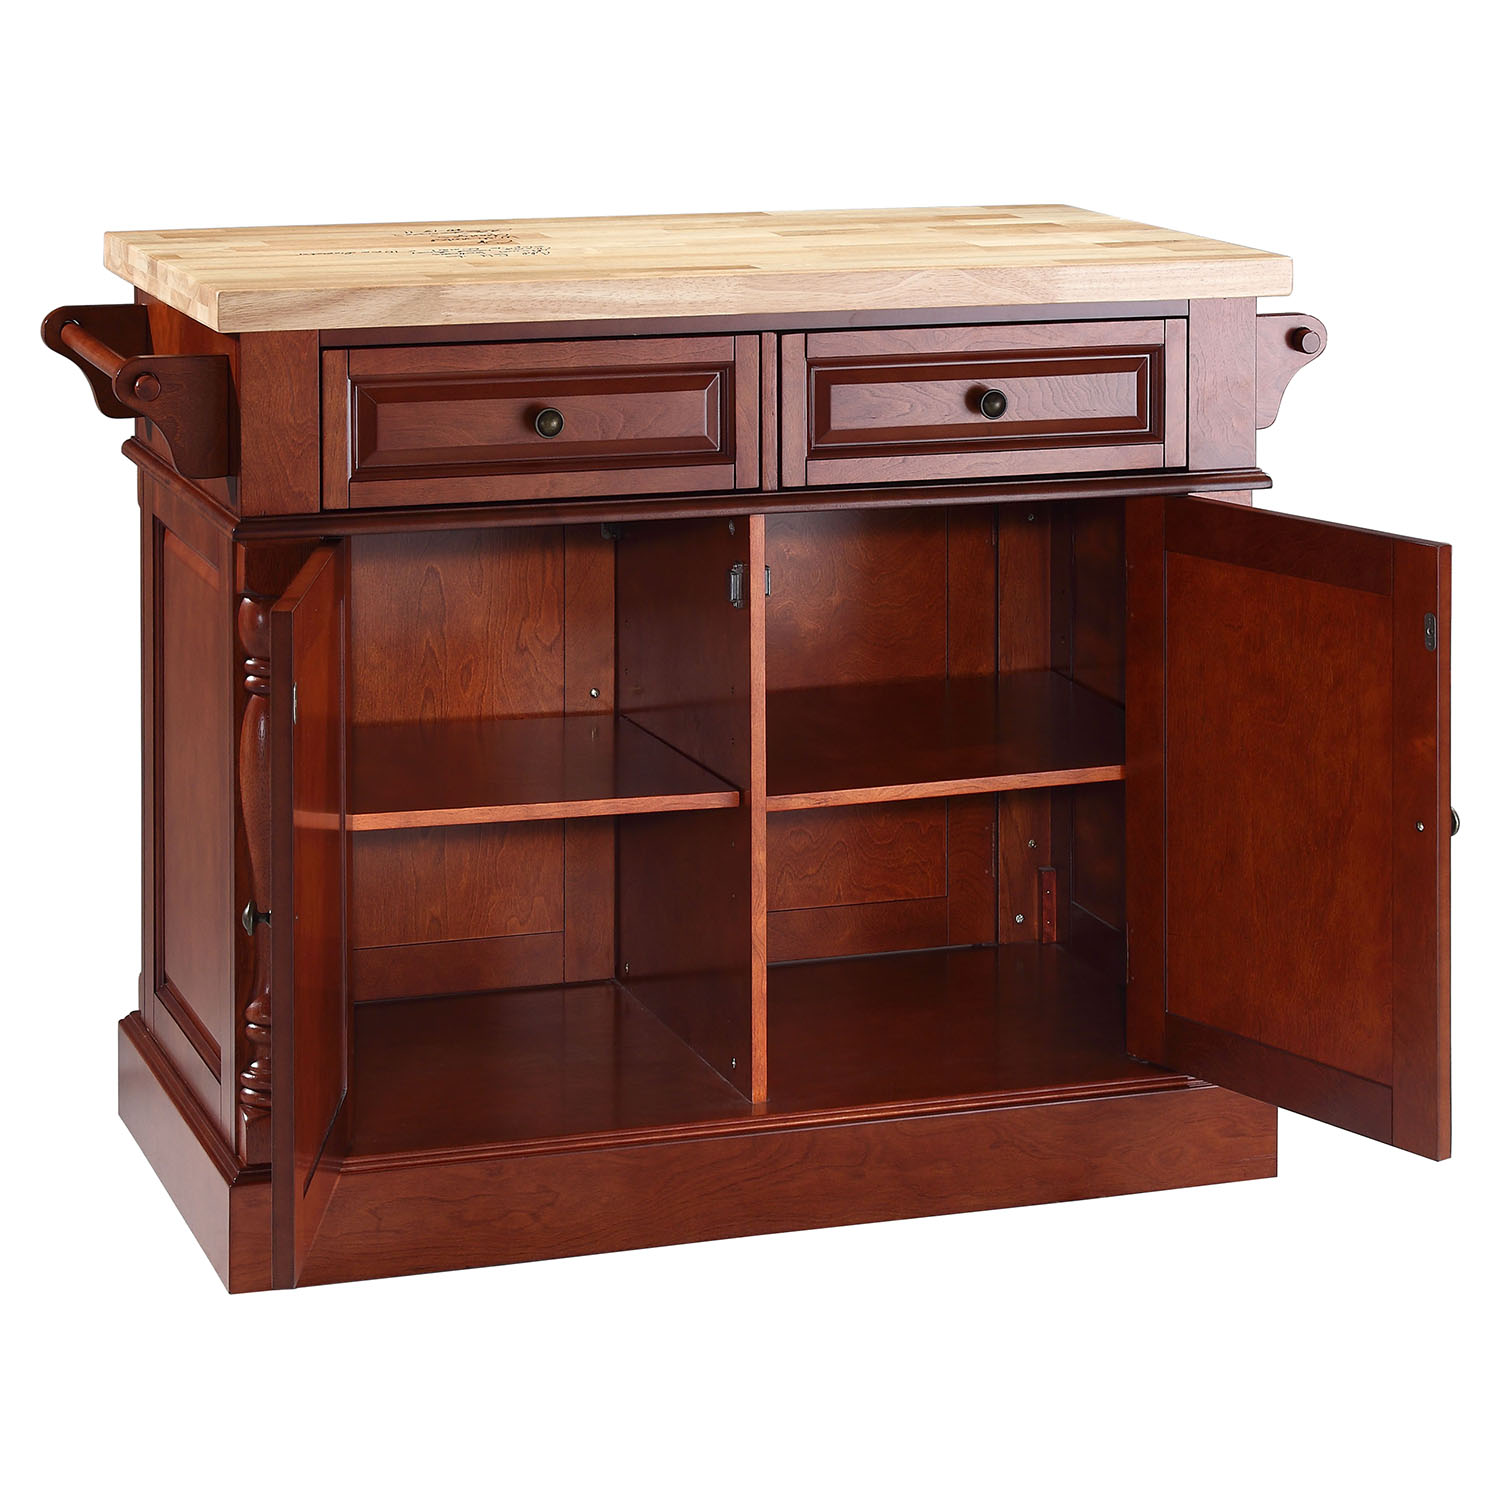 Kitchen Island With Drawers On Both Sides